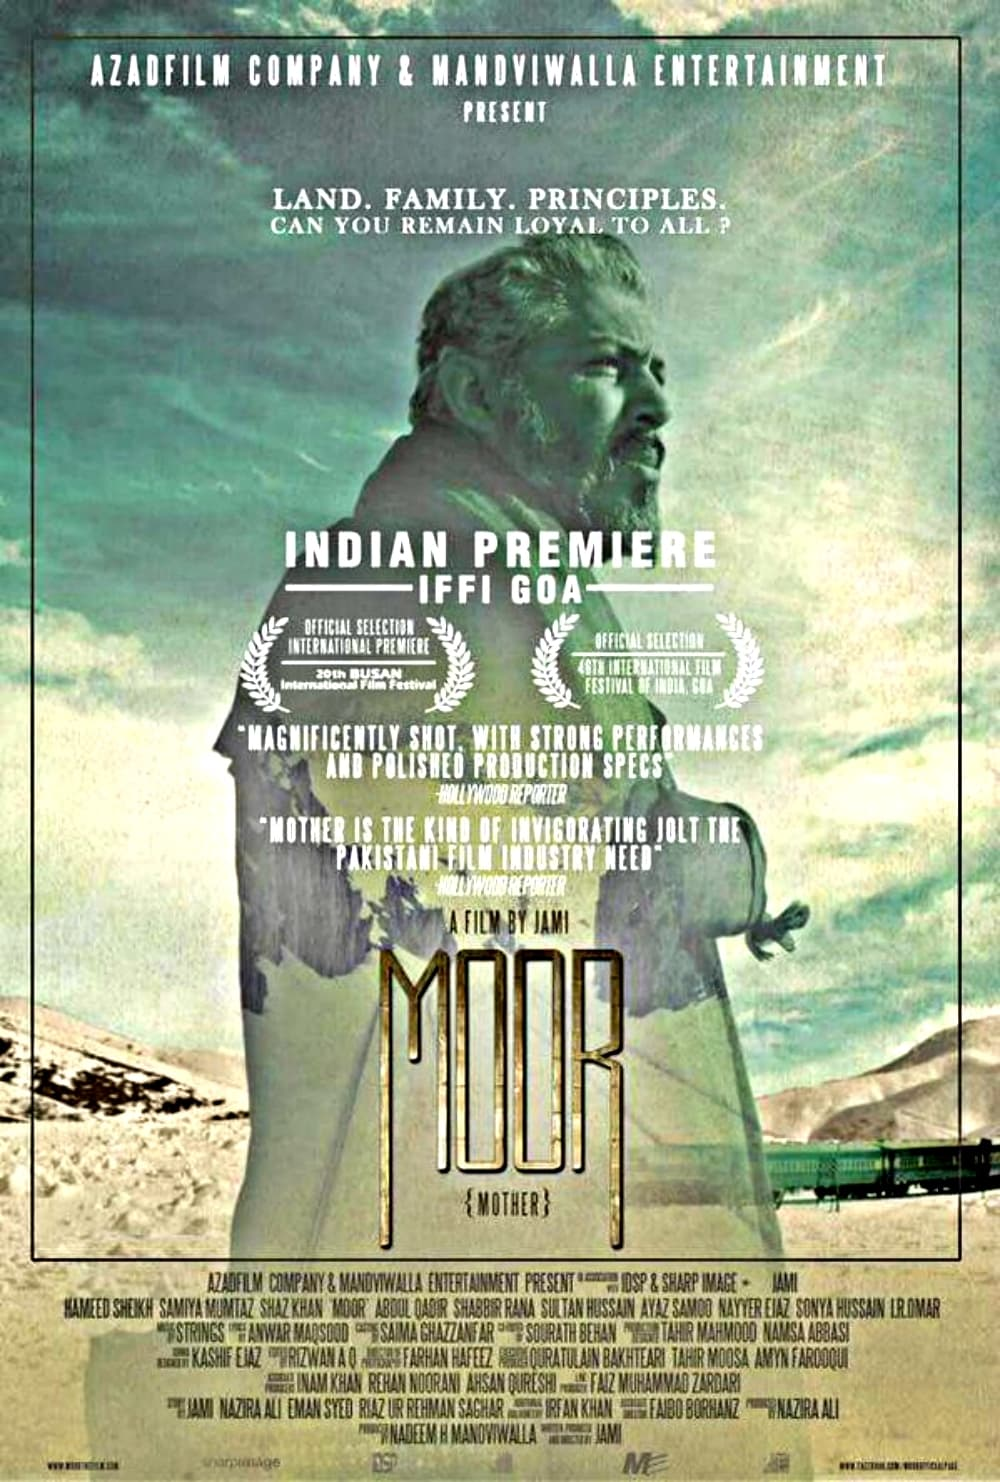 Moor's Indian premiere will take place at the nternational Film Festival of India (IFFI) in Goa